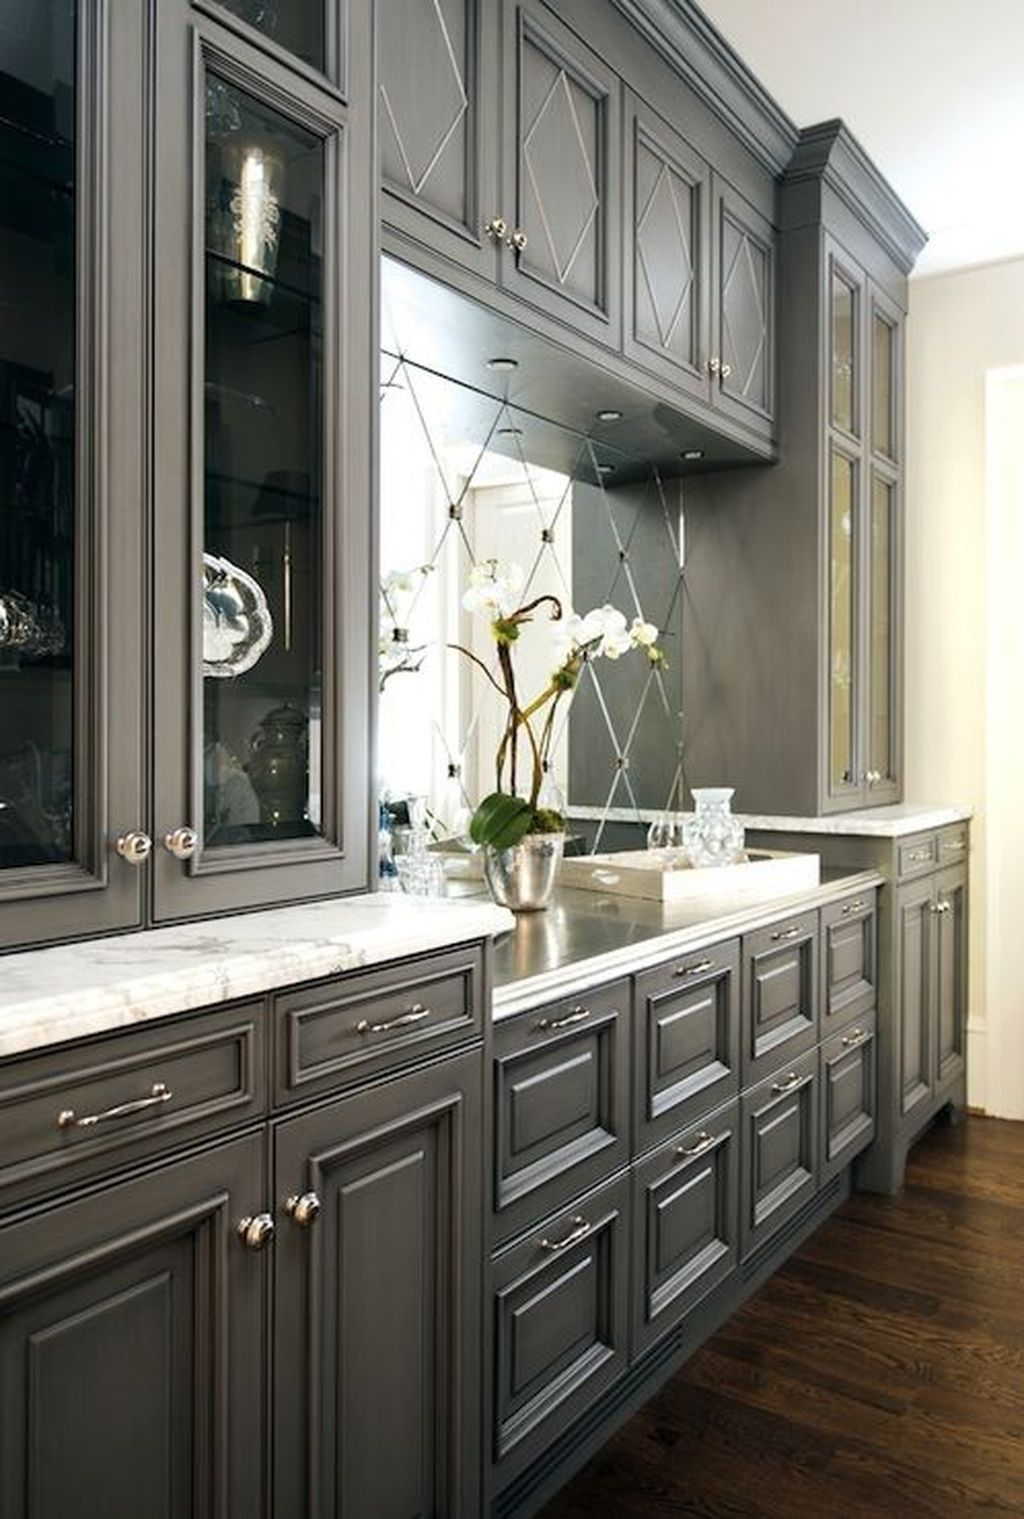 20 Cool Kitchen Color Scheme Ideas For Dark Cabinets